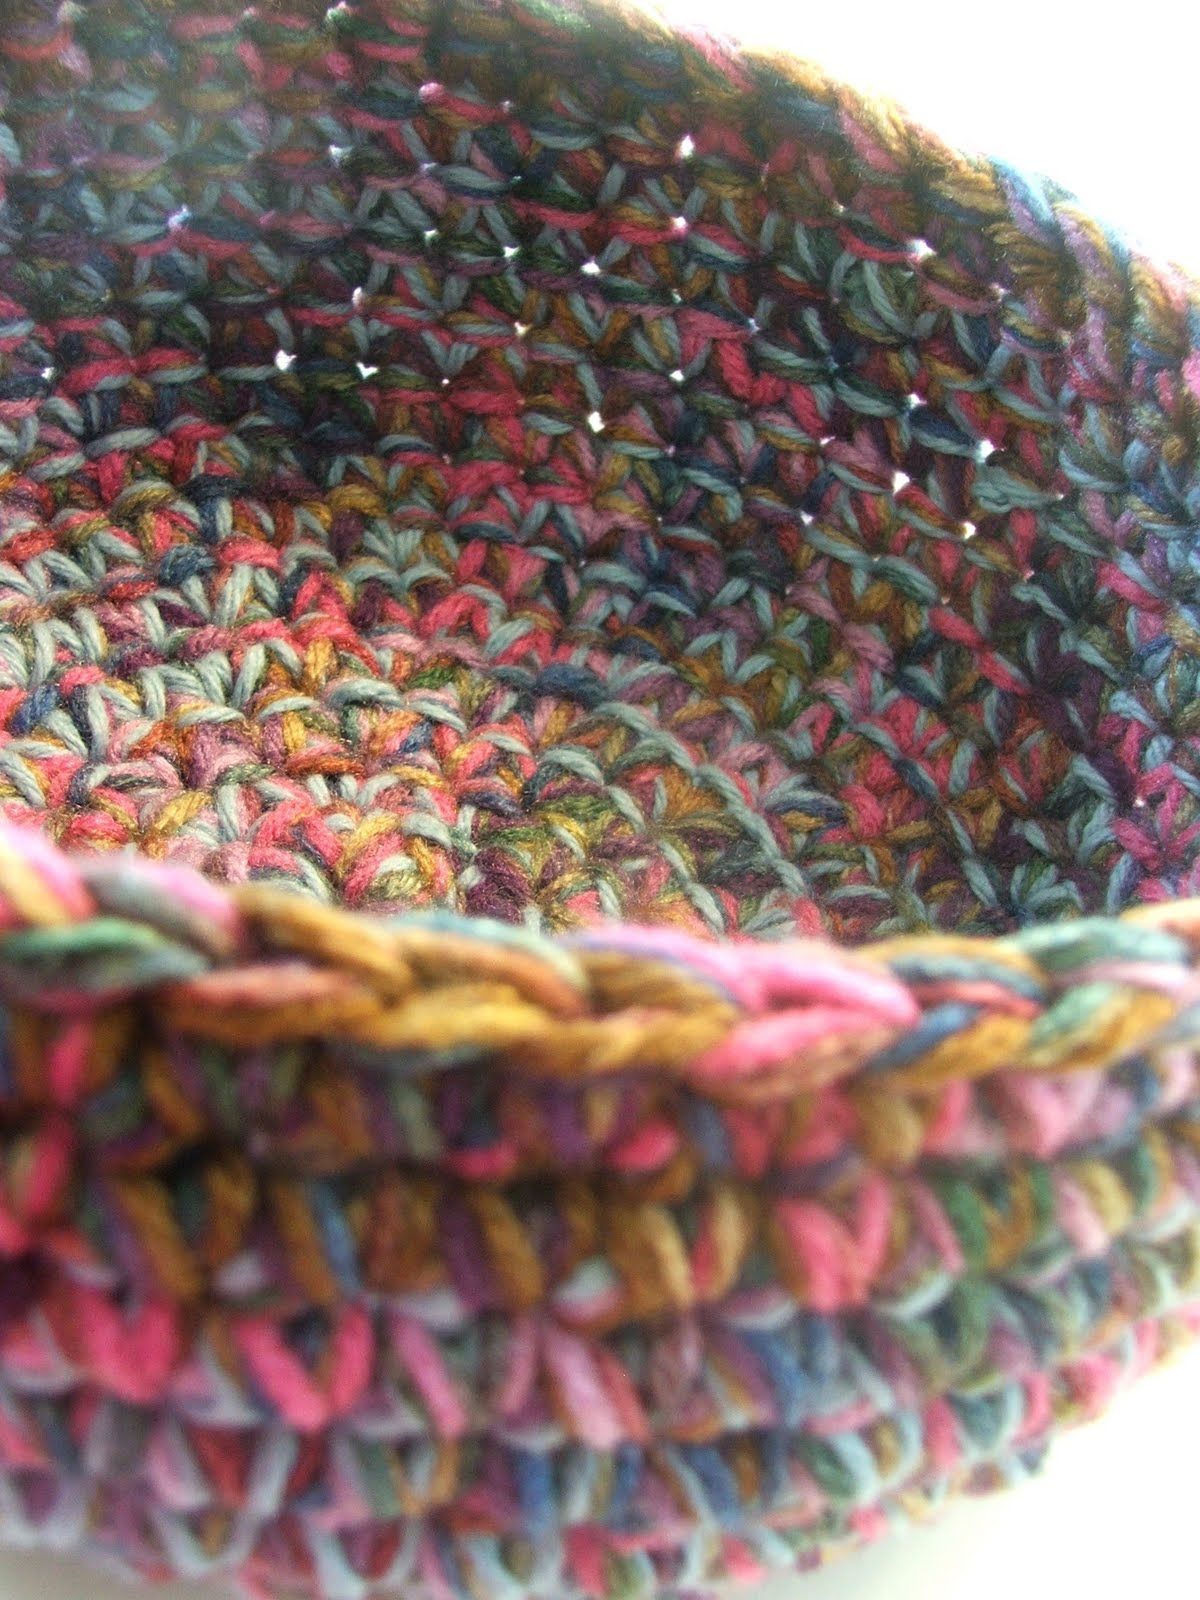 Susan\'s Hippie Crochet: Free Chunky Crocheted Bowl Pattern | Love ...